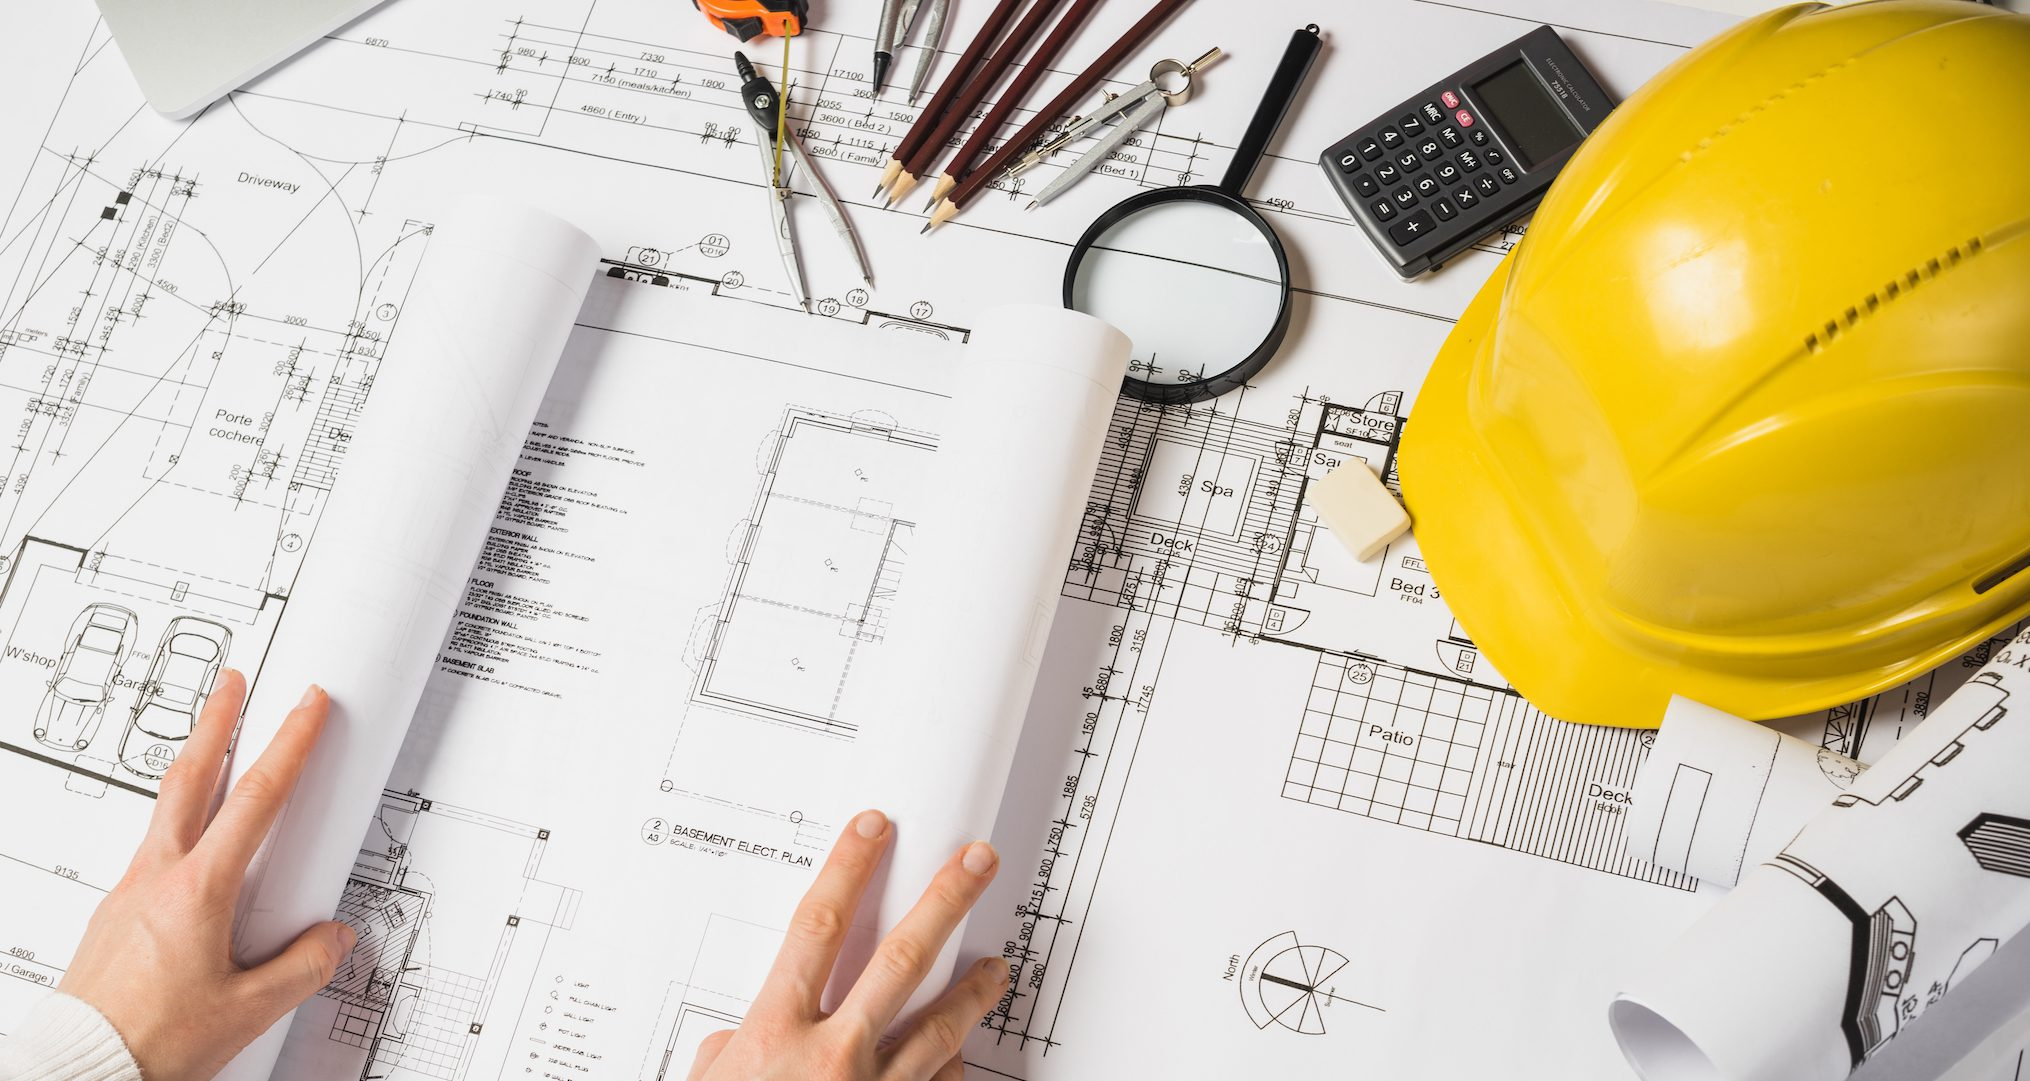 blueprints with a hard hat and drafting tools